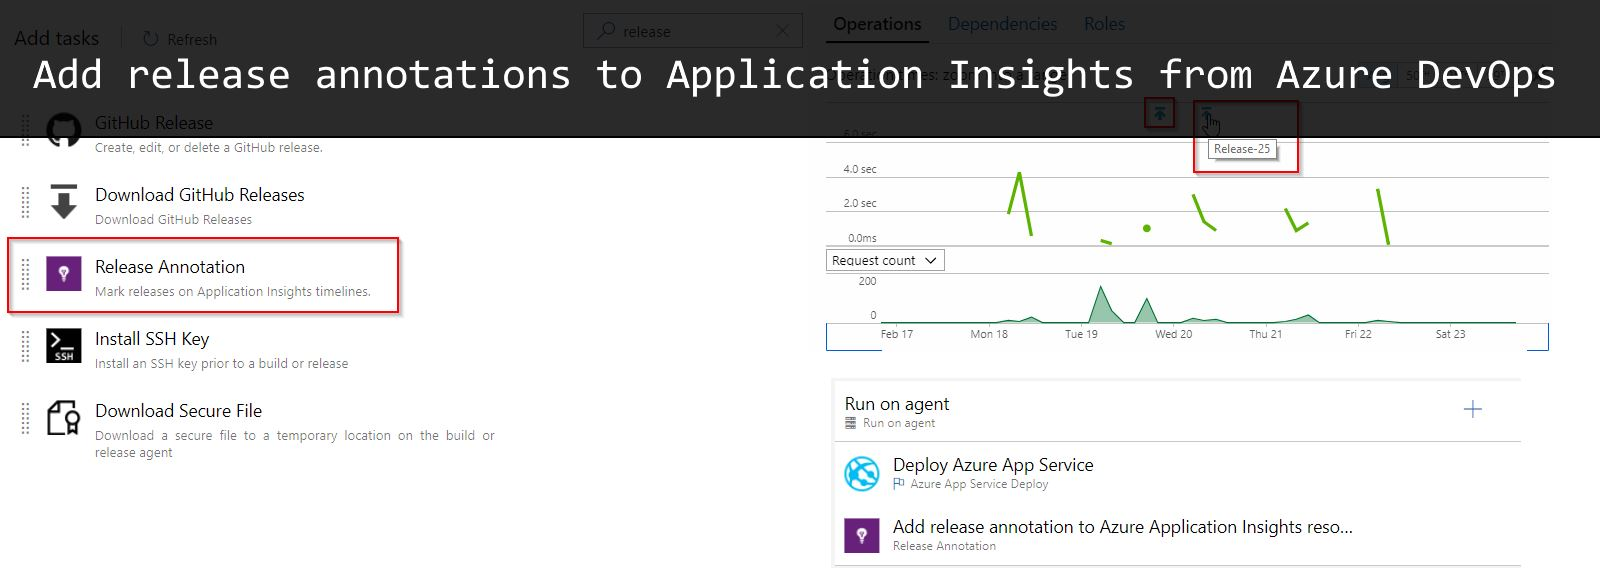 Add release annotations to Application Insights from Azure